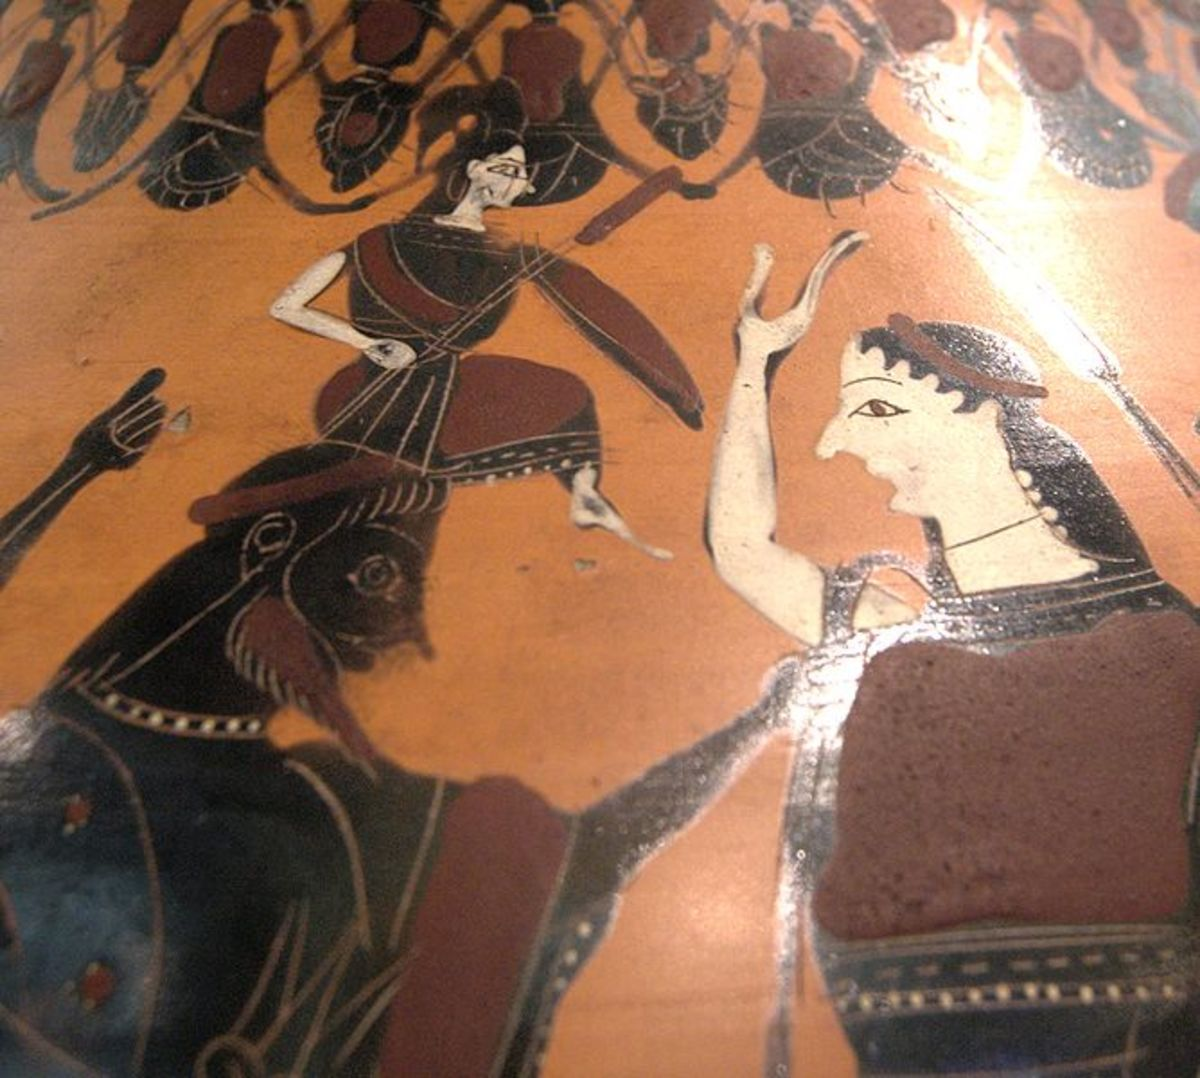 AtAthene emerging from the head of Zeus. Eileithyia, Goddess of childbirth stands on the right, ready to assist.